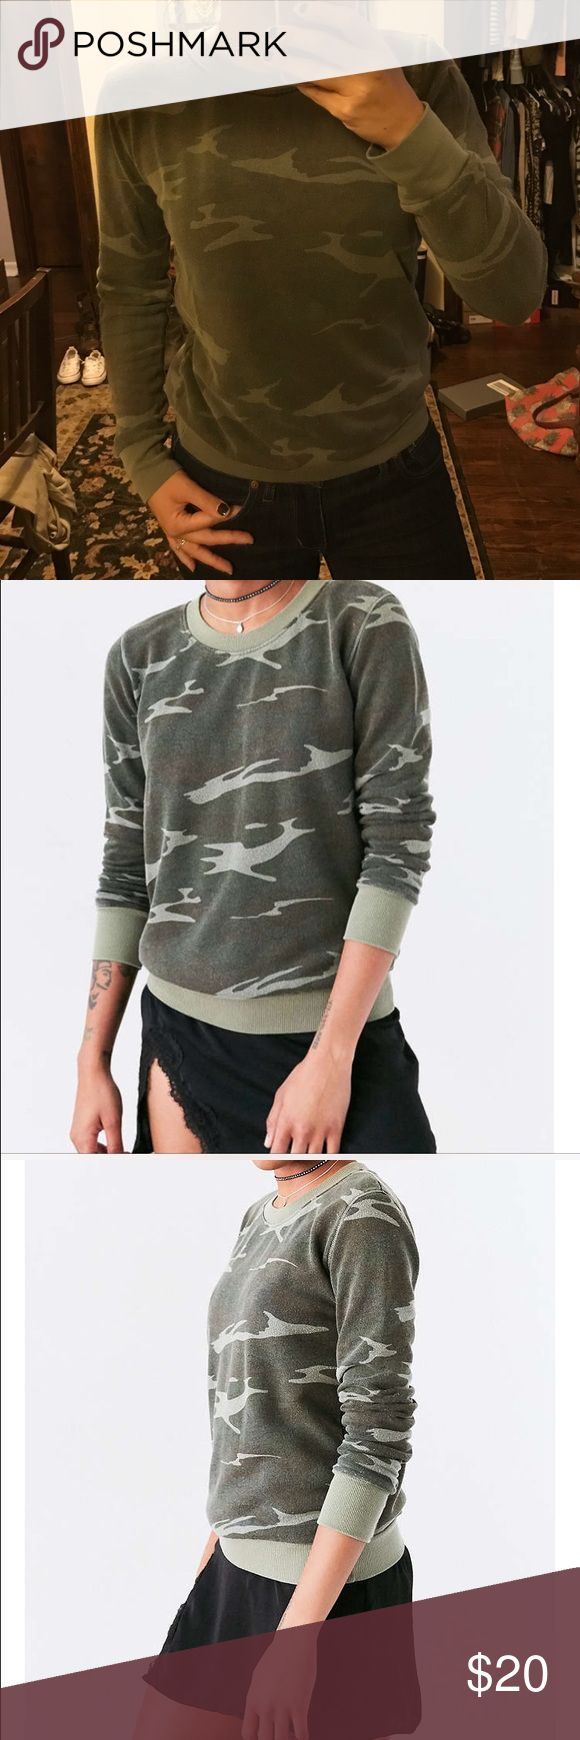 UO Camo Sweatshirt Truly Madly Deeply from Urban Outfitters..  Camo sweatshirt: comfy, edgy, on trend.  Pair with jeans, leggings, skirts...  effortless. fits like a small. Urban Outfitters Sweaters Crew & Scoop Necks